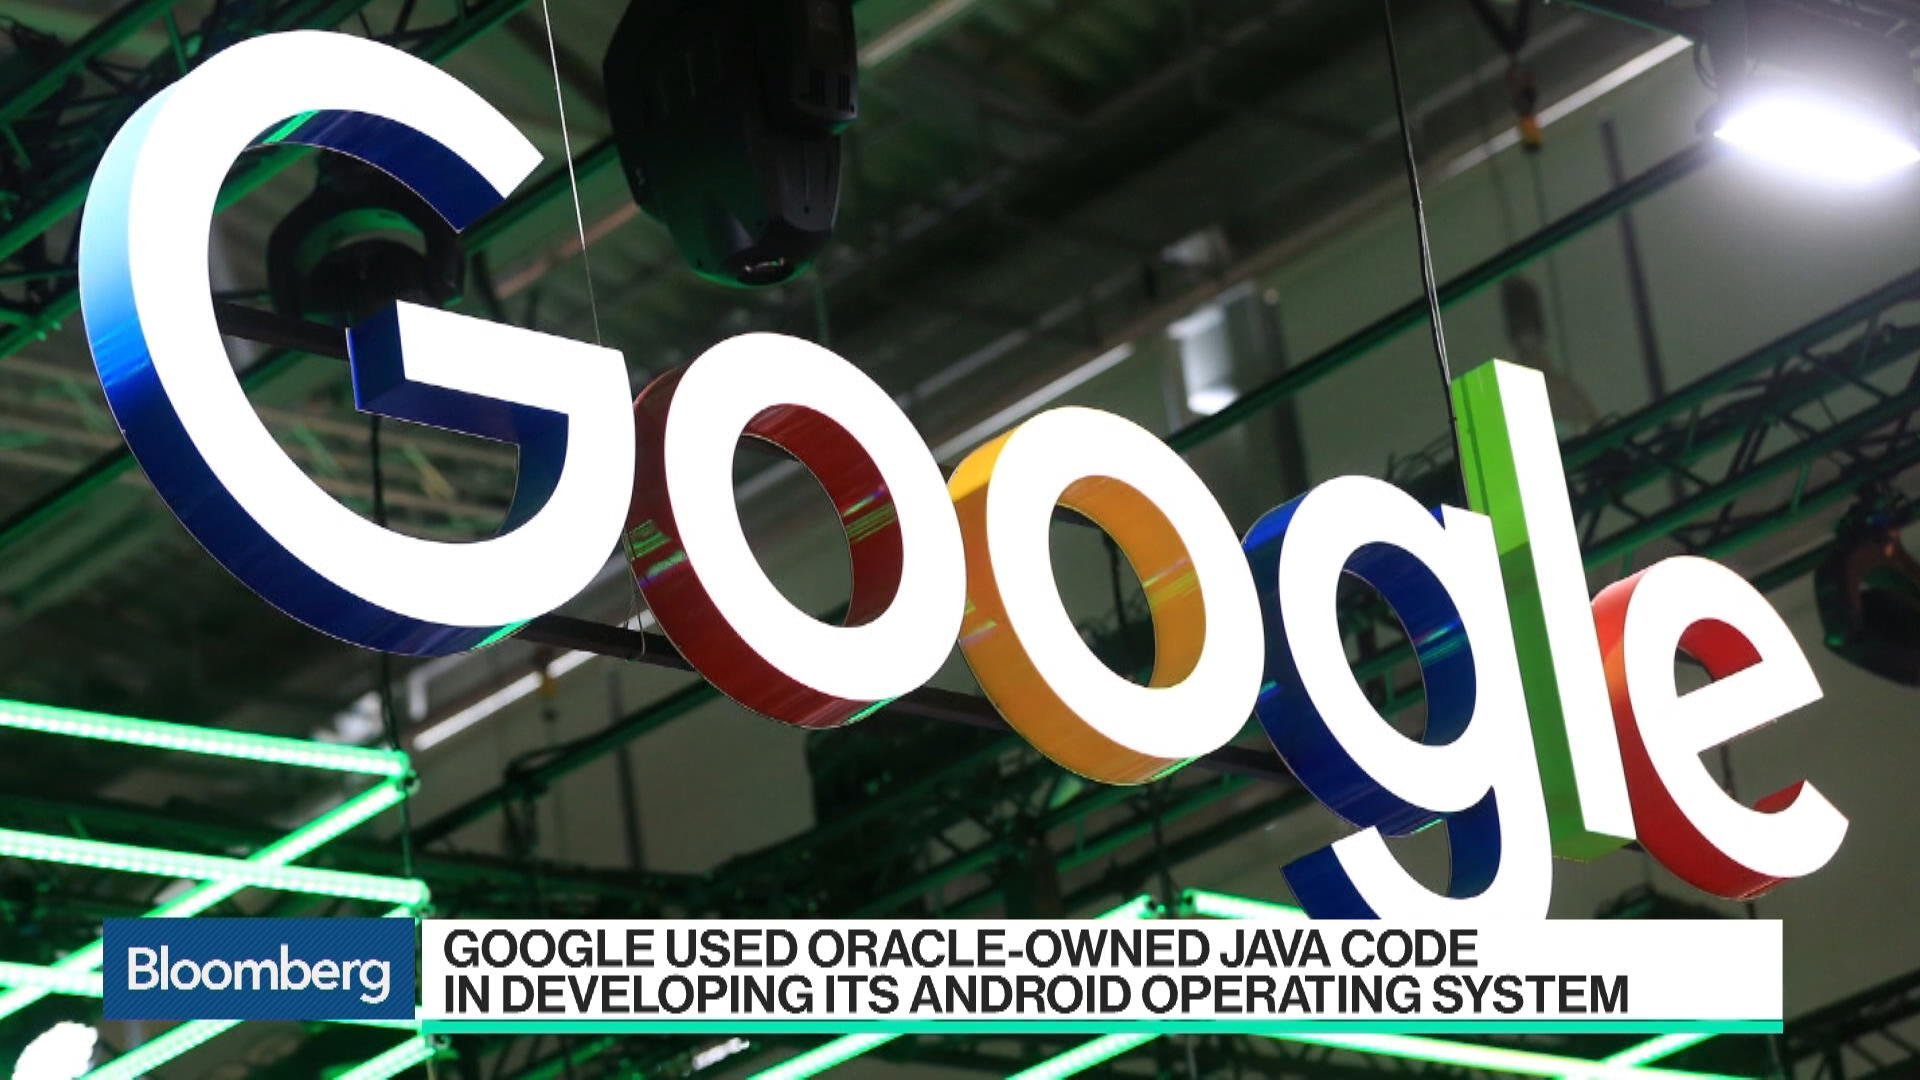 Google Could Owe Oracle $8 8 Billion in Android Fight - Bloomberg